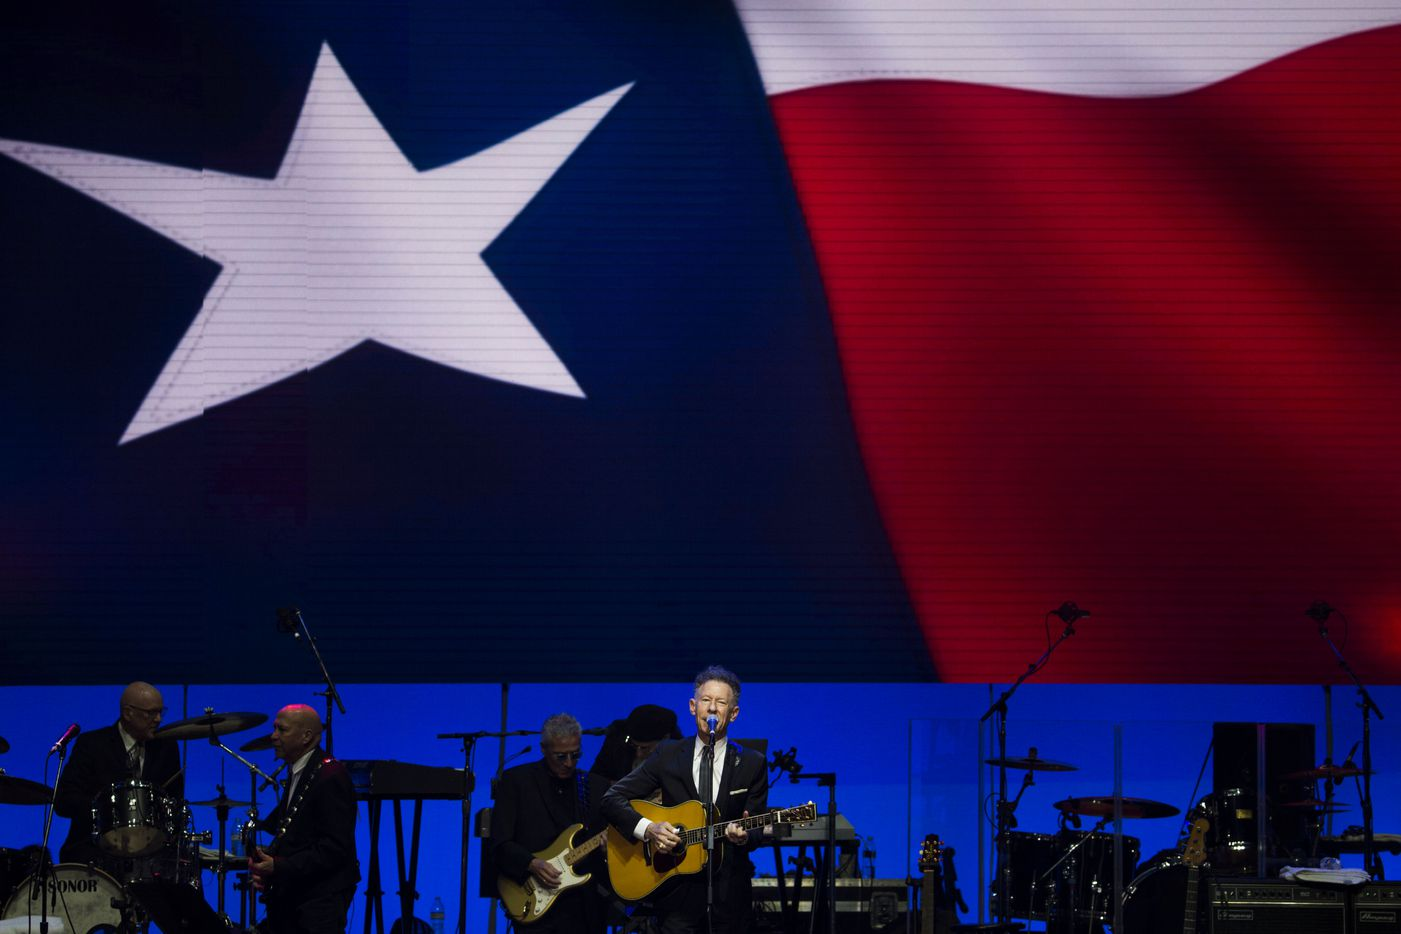 Lyle Lovett performs during Deep from the Heart: The One America Appeal Concert.